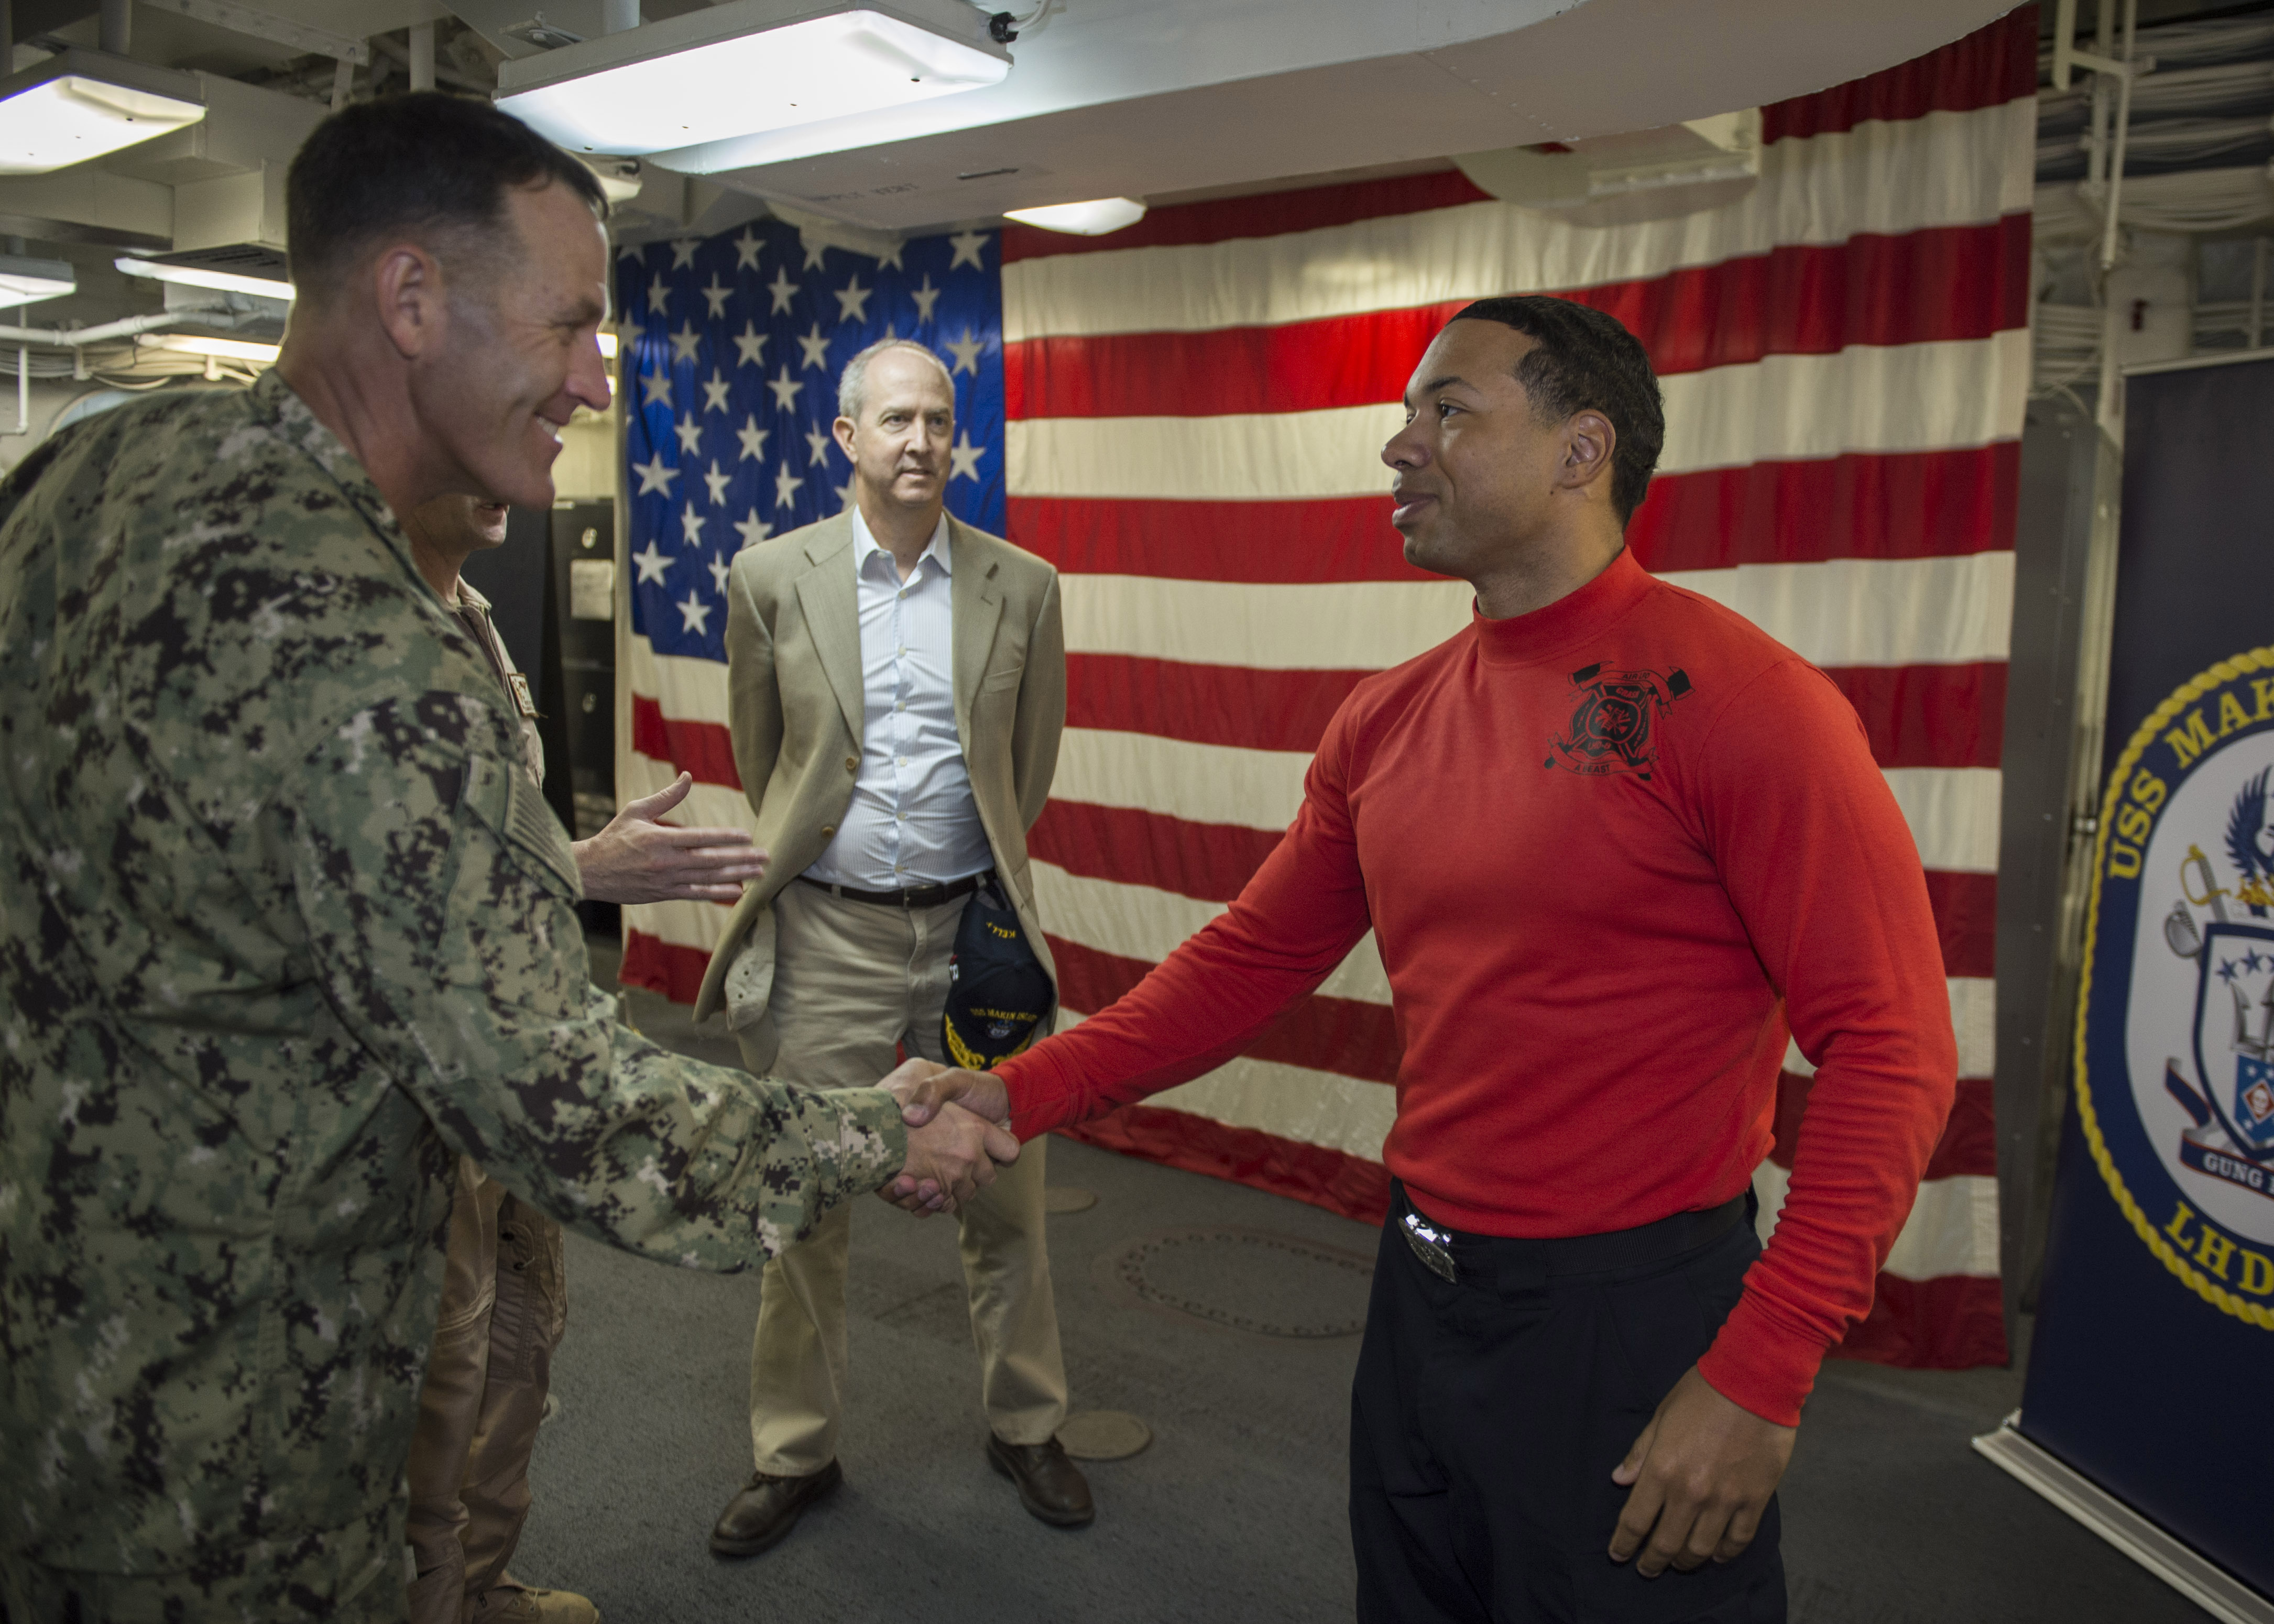 U.S. 5TH FLEET AREA OF OPERATIONS (Dec. 16, 2016) Rear Adm. William W. Wheeler, Deputy Commander, Combined Joint Task Force – Horn of Africa, greets USS Makin Island (LHD 8) Sailor of the Year, Petty Officer 1st Class Benjamin Odea, from Lansing, Mich., during a tour aboard the amphibious assault ship. Makin Island is deployed as part of the Makin Island Amphibious Ready group to the U.S. 5th Fleet area of operations to support maritime security operations and theater security cooperation efforts. (U.S. Navy photo by Petty Officer 3rd Class Devin M. Langer)